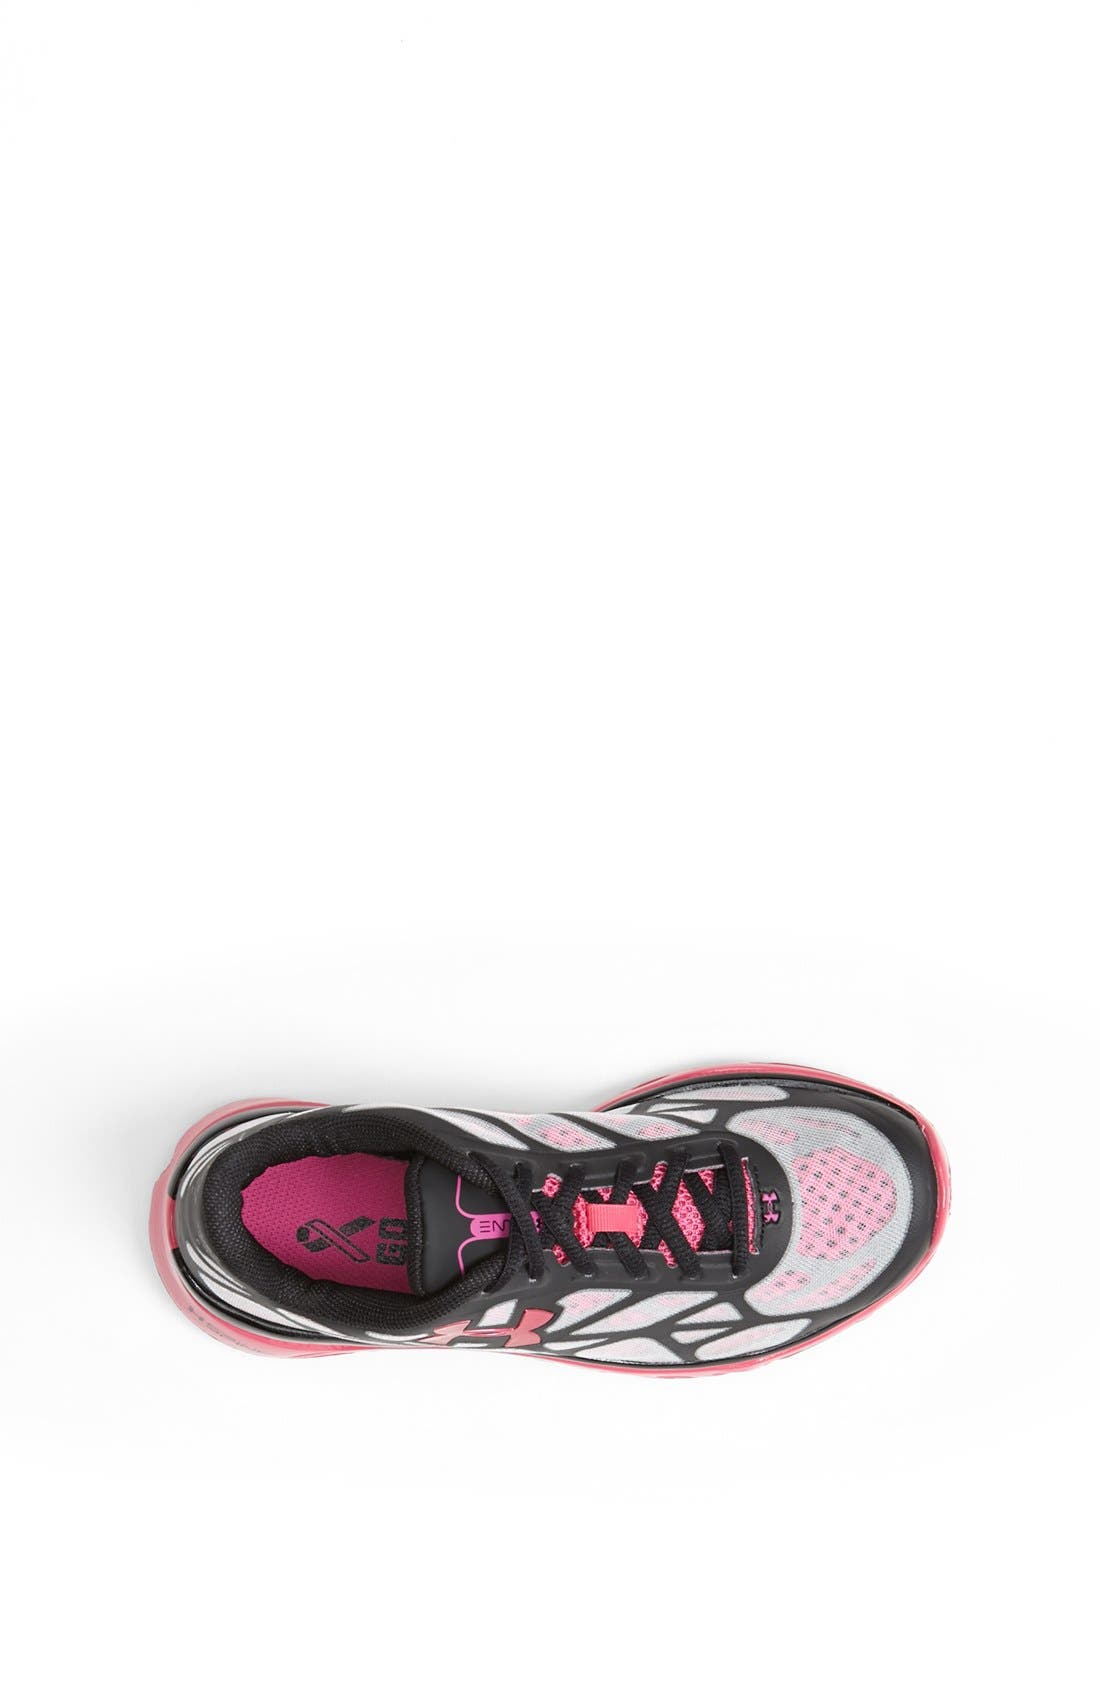 Alternate Image 3  - Under Armour 'Spine™ Vice Breast Cancer Awareness' Athletic Shoe (Big Kid)